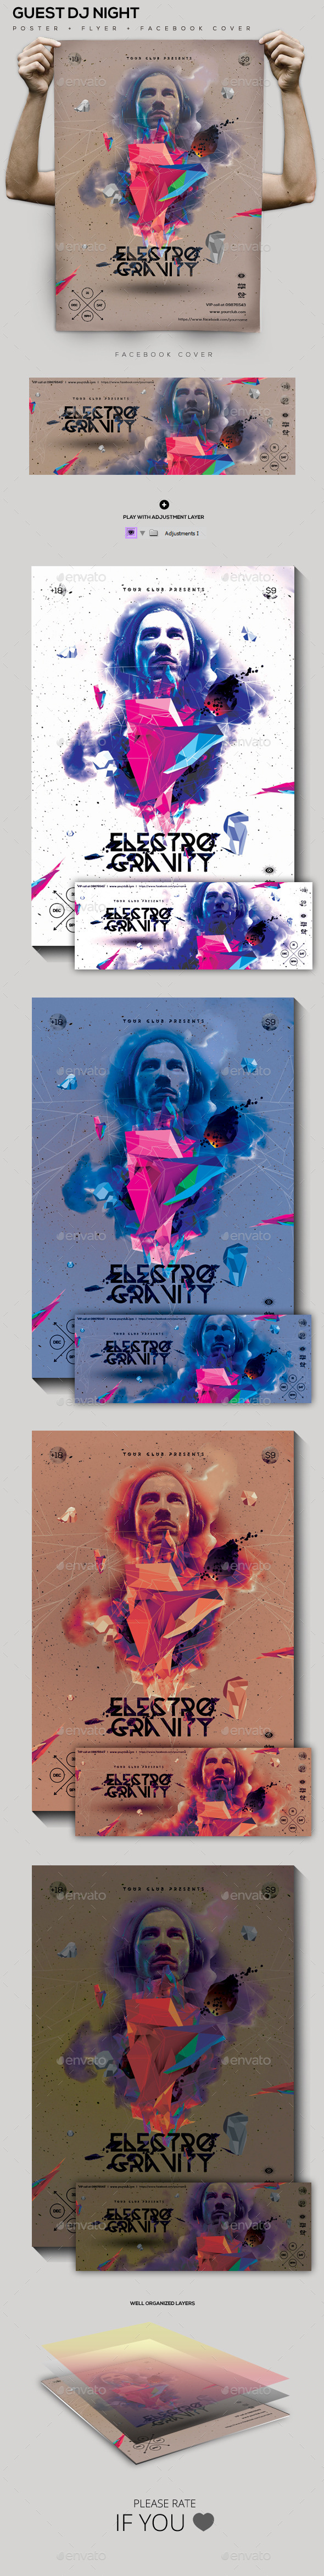 Electro Gravity Guest Dj Party Flyer/Poster - Clubs & Parties Events